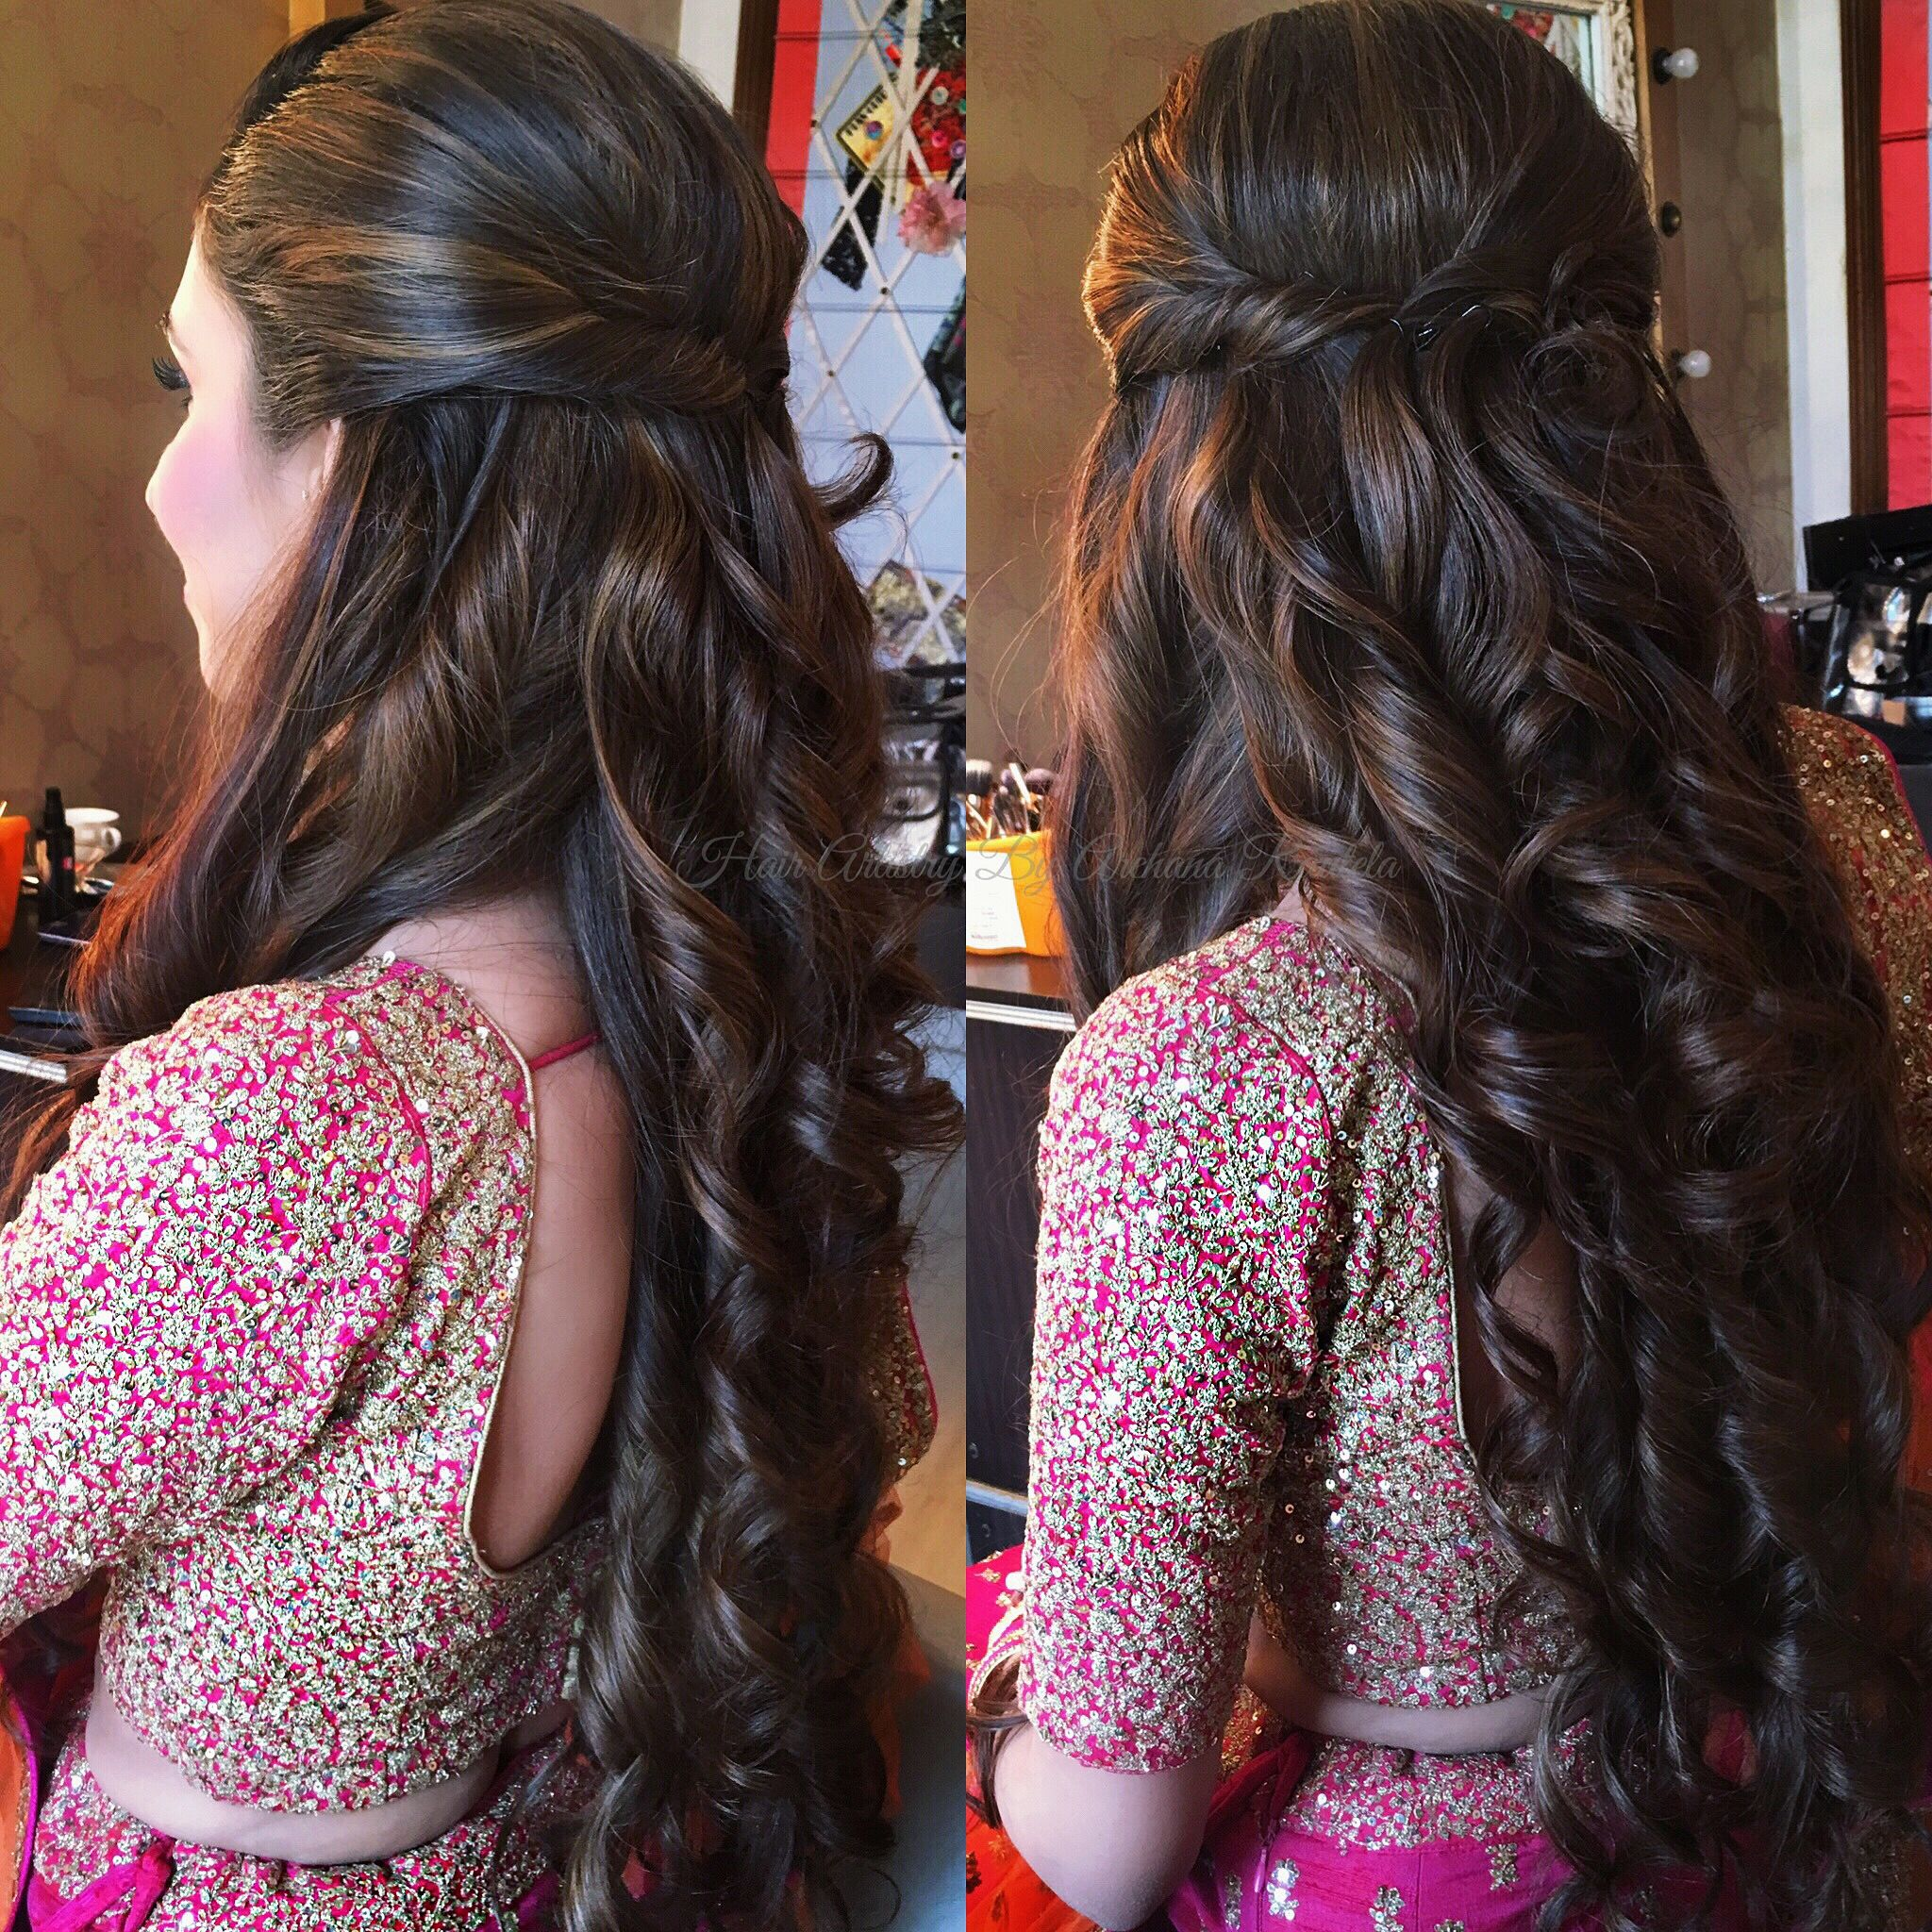 Long Hair Love Hair Artistry By Archana Rautela Engagement Hairstyles Party Hairstyles For Long Hair Long Hair Styles